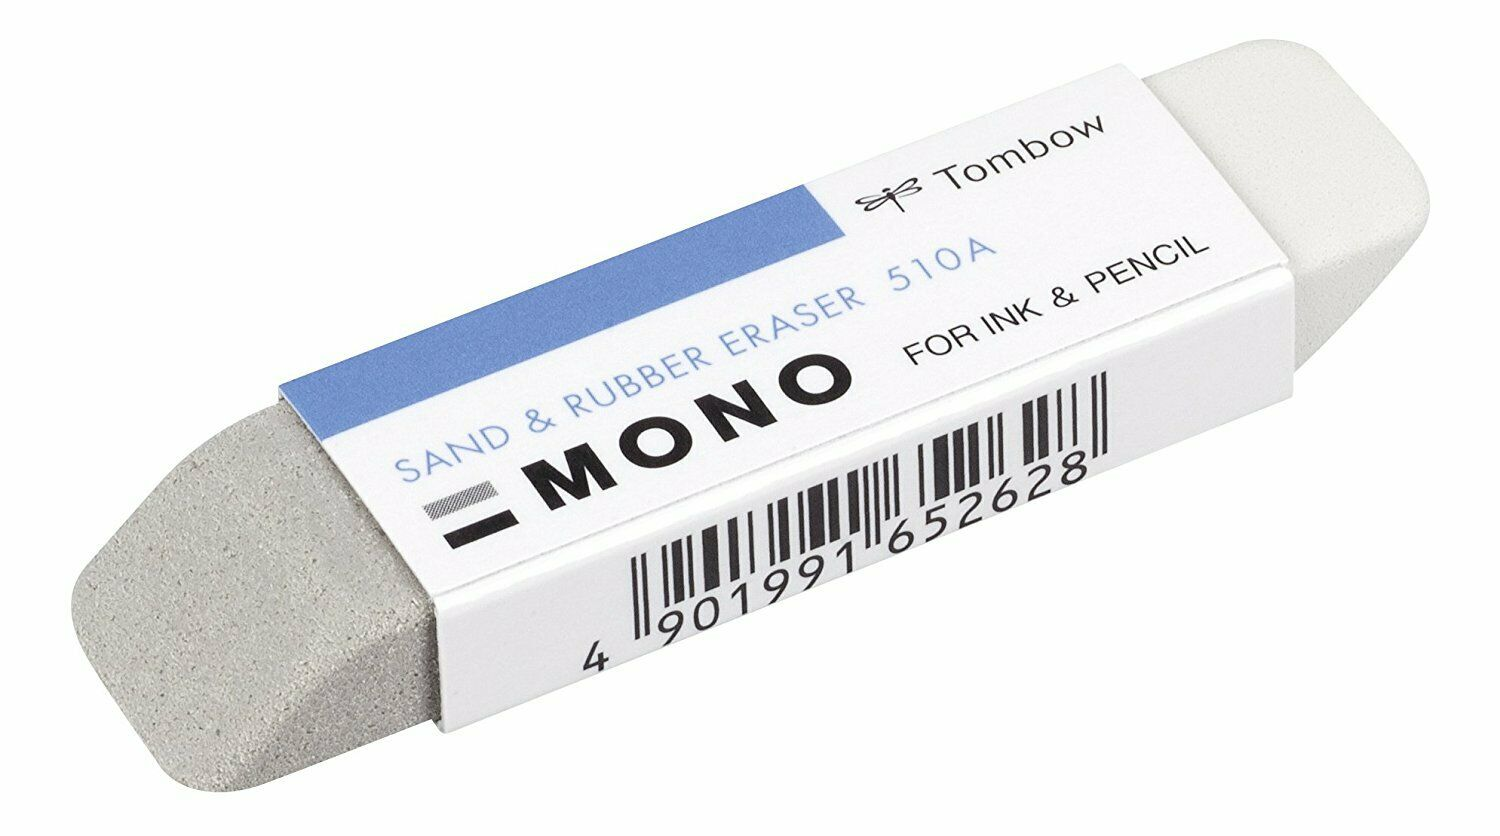 Tombow ES-512A MONO Sand Eraser For Ink natural rubber latex /& silica grit